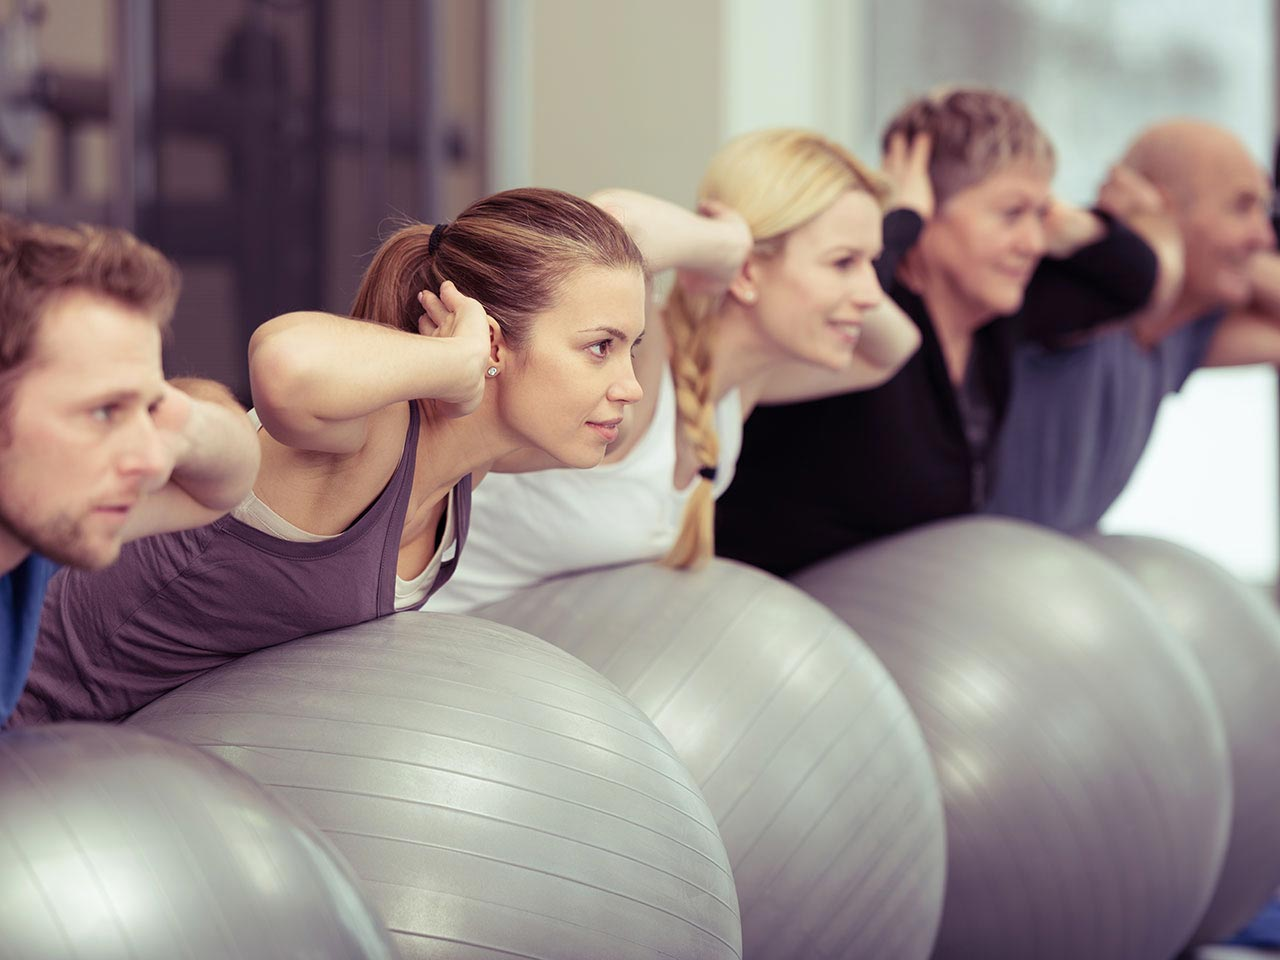 Group of people in gym using pilates balls